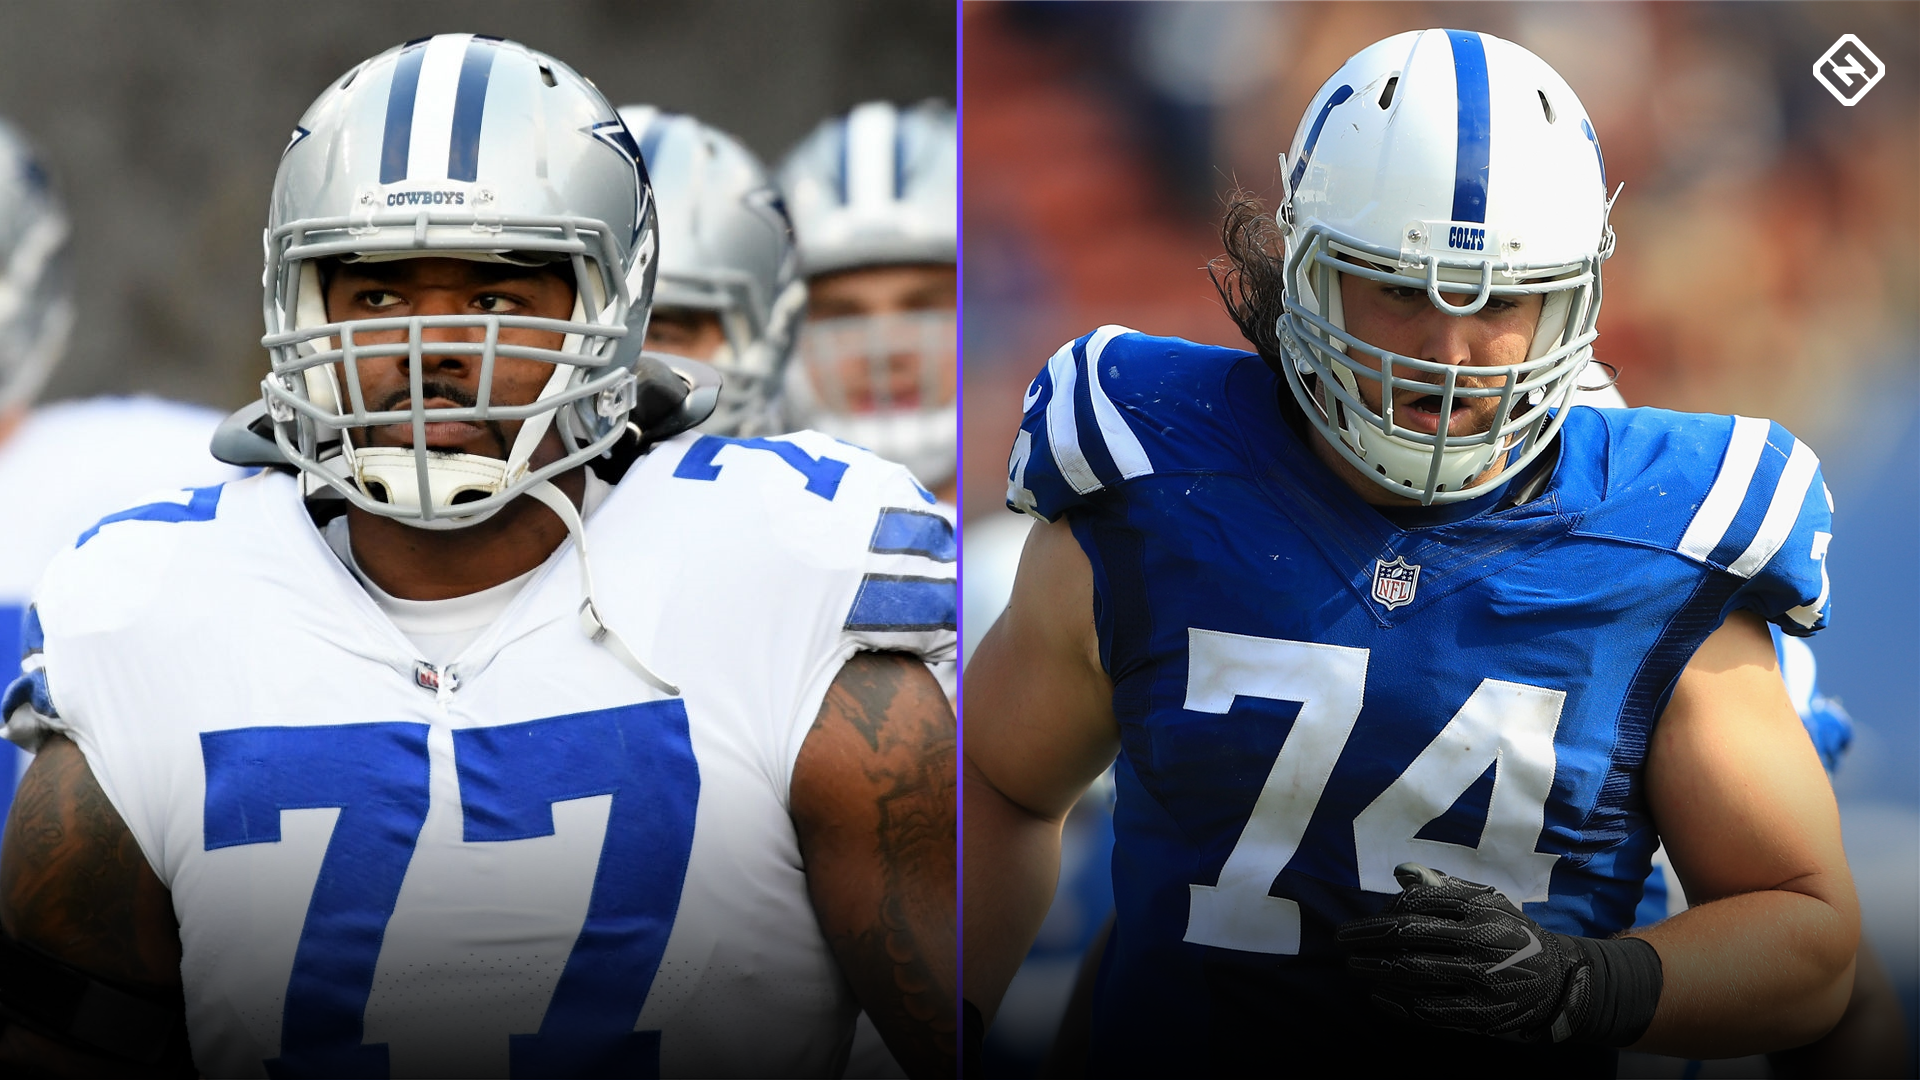 Best Offensive Lines 2020.2019 Offensive Line Rankings Find Fantasy Football Sleepers